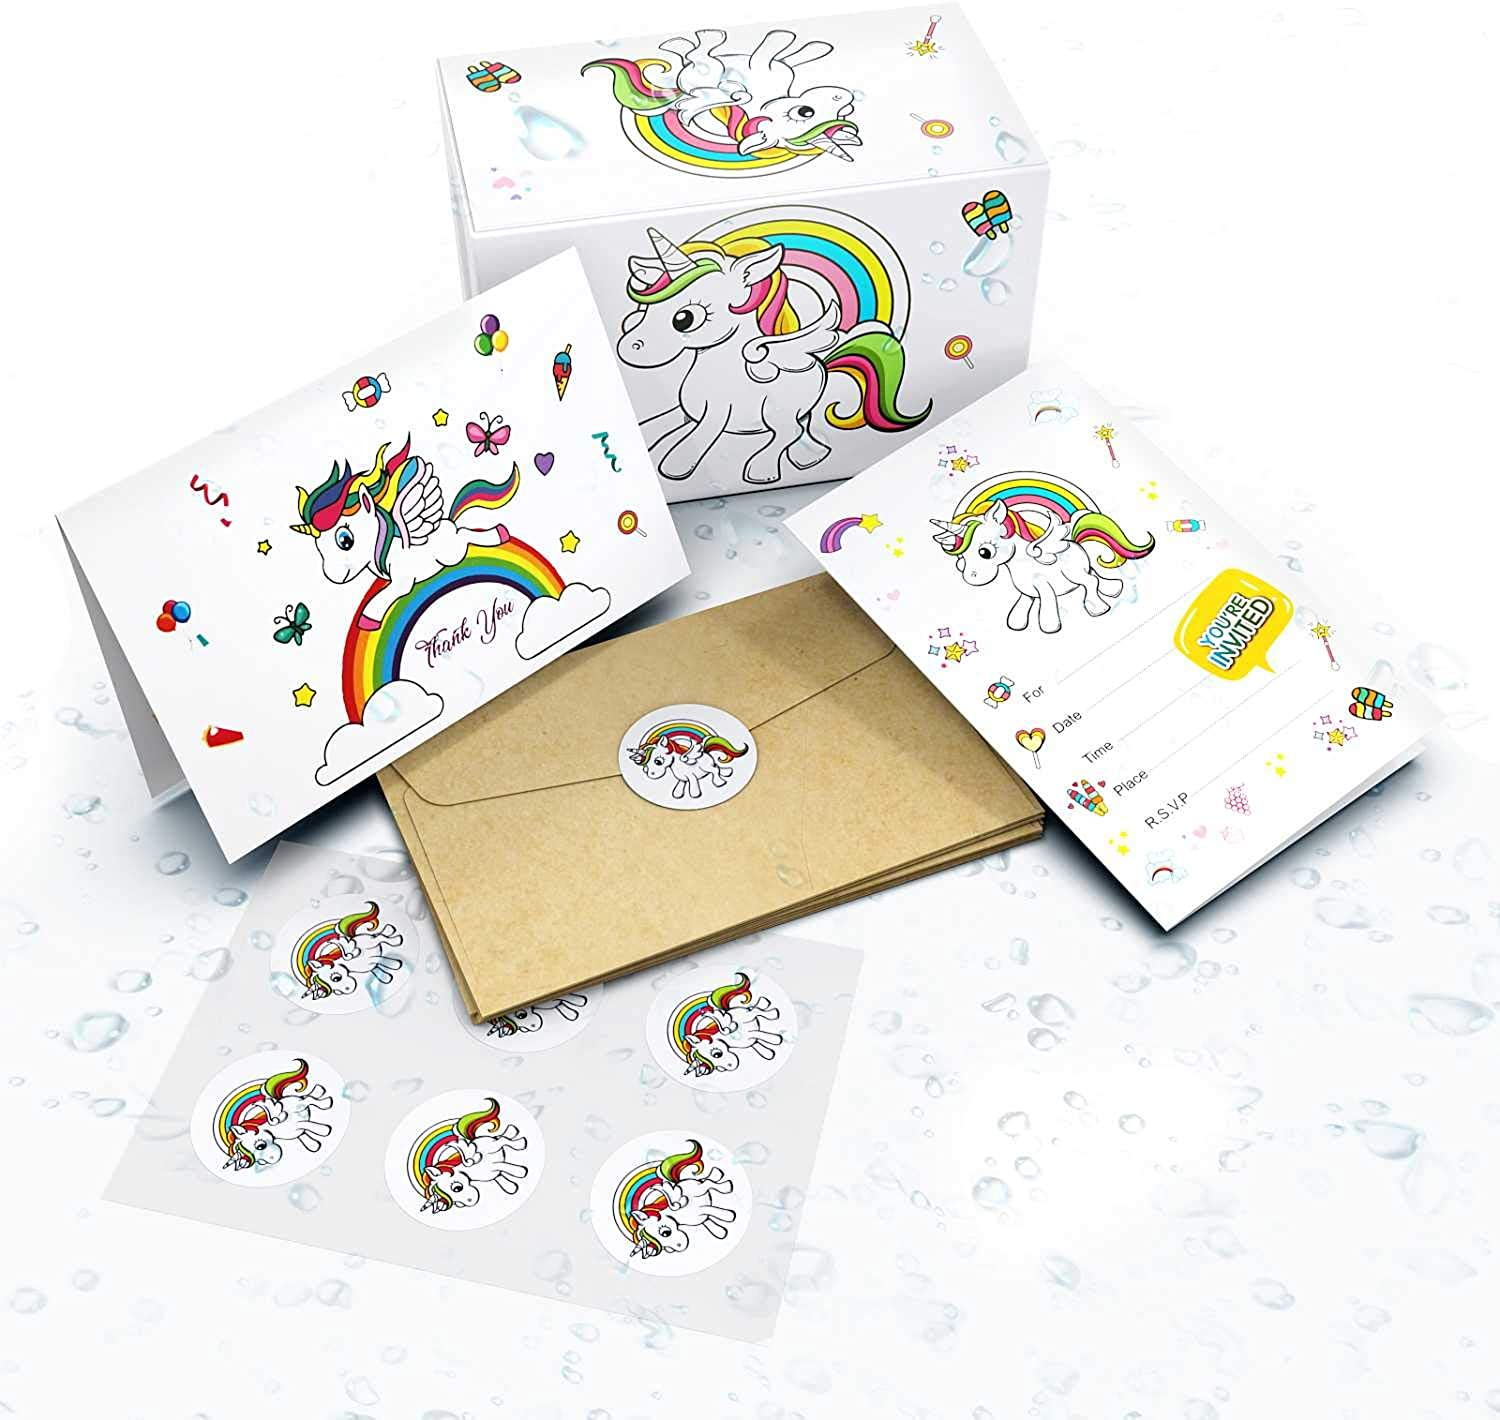 Unicorn Invitations Birthday Party Cards  24 Invite Card + 24 Thank You Card + Bonus 24 Tattoos + 48 Envelopes and Stickers  Blank Inside Invites for Girls Boys Birthdays Kids Party Baby Shower